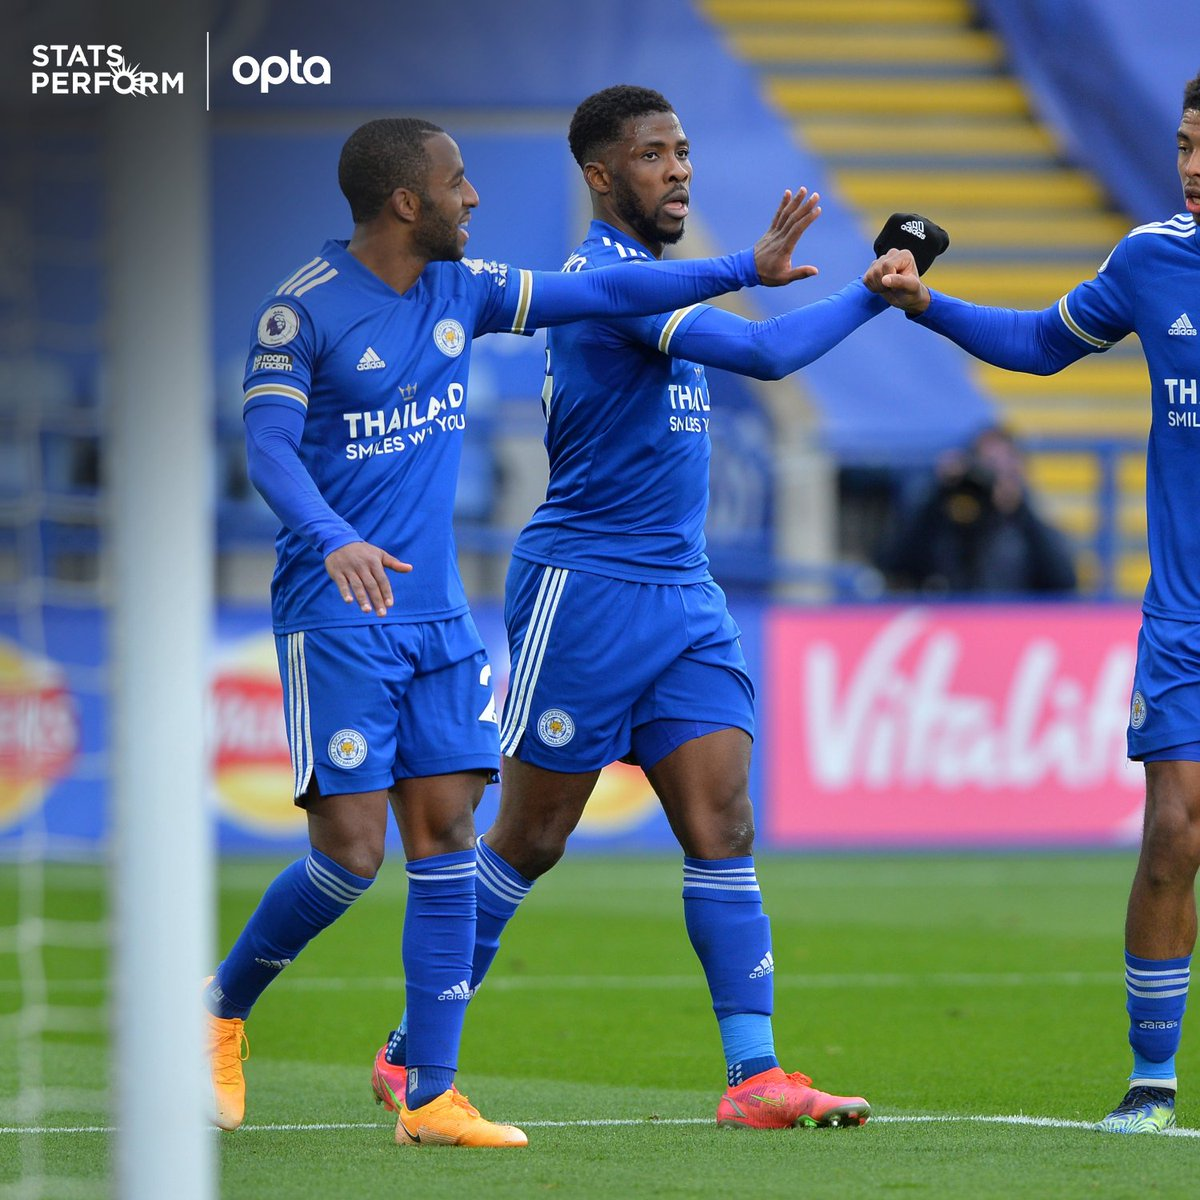 Optajoe On Twitter 3 Kelechi Iheanacho Has Scored The First Hat Trick Of His Premier League Career While Each Of The Last Three Hat Tricks In The Competition Have Been Scored By African